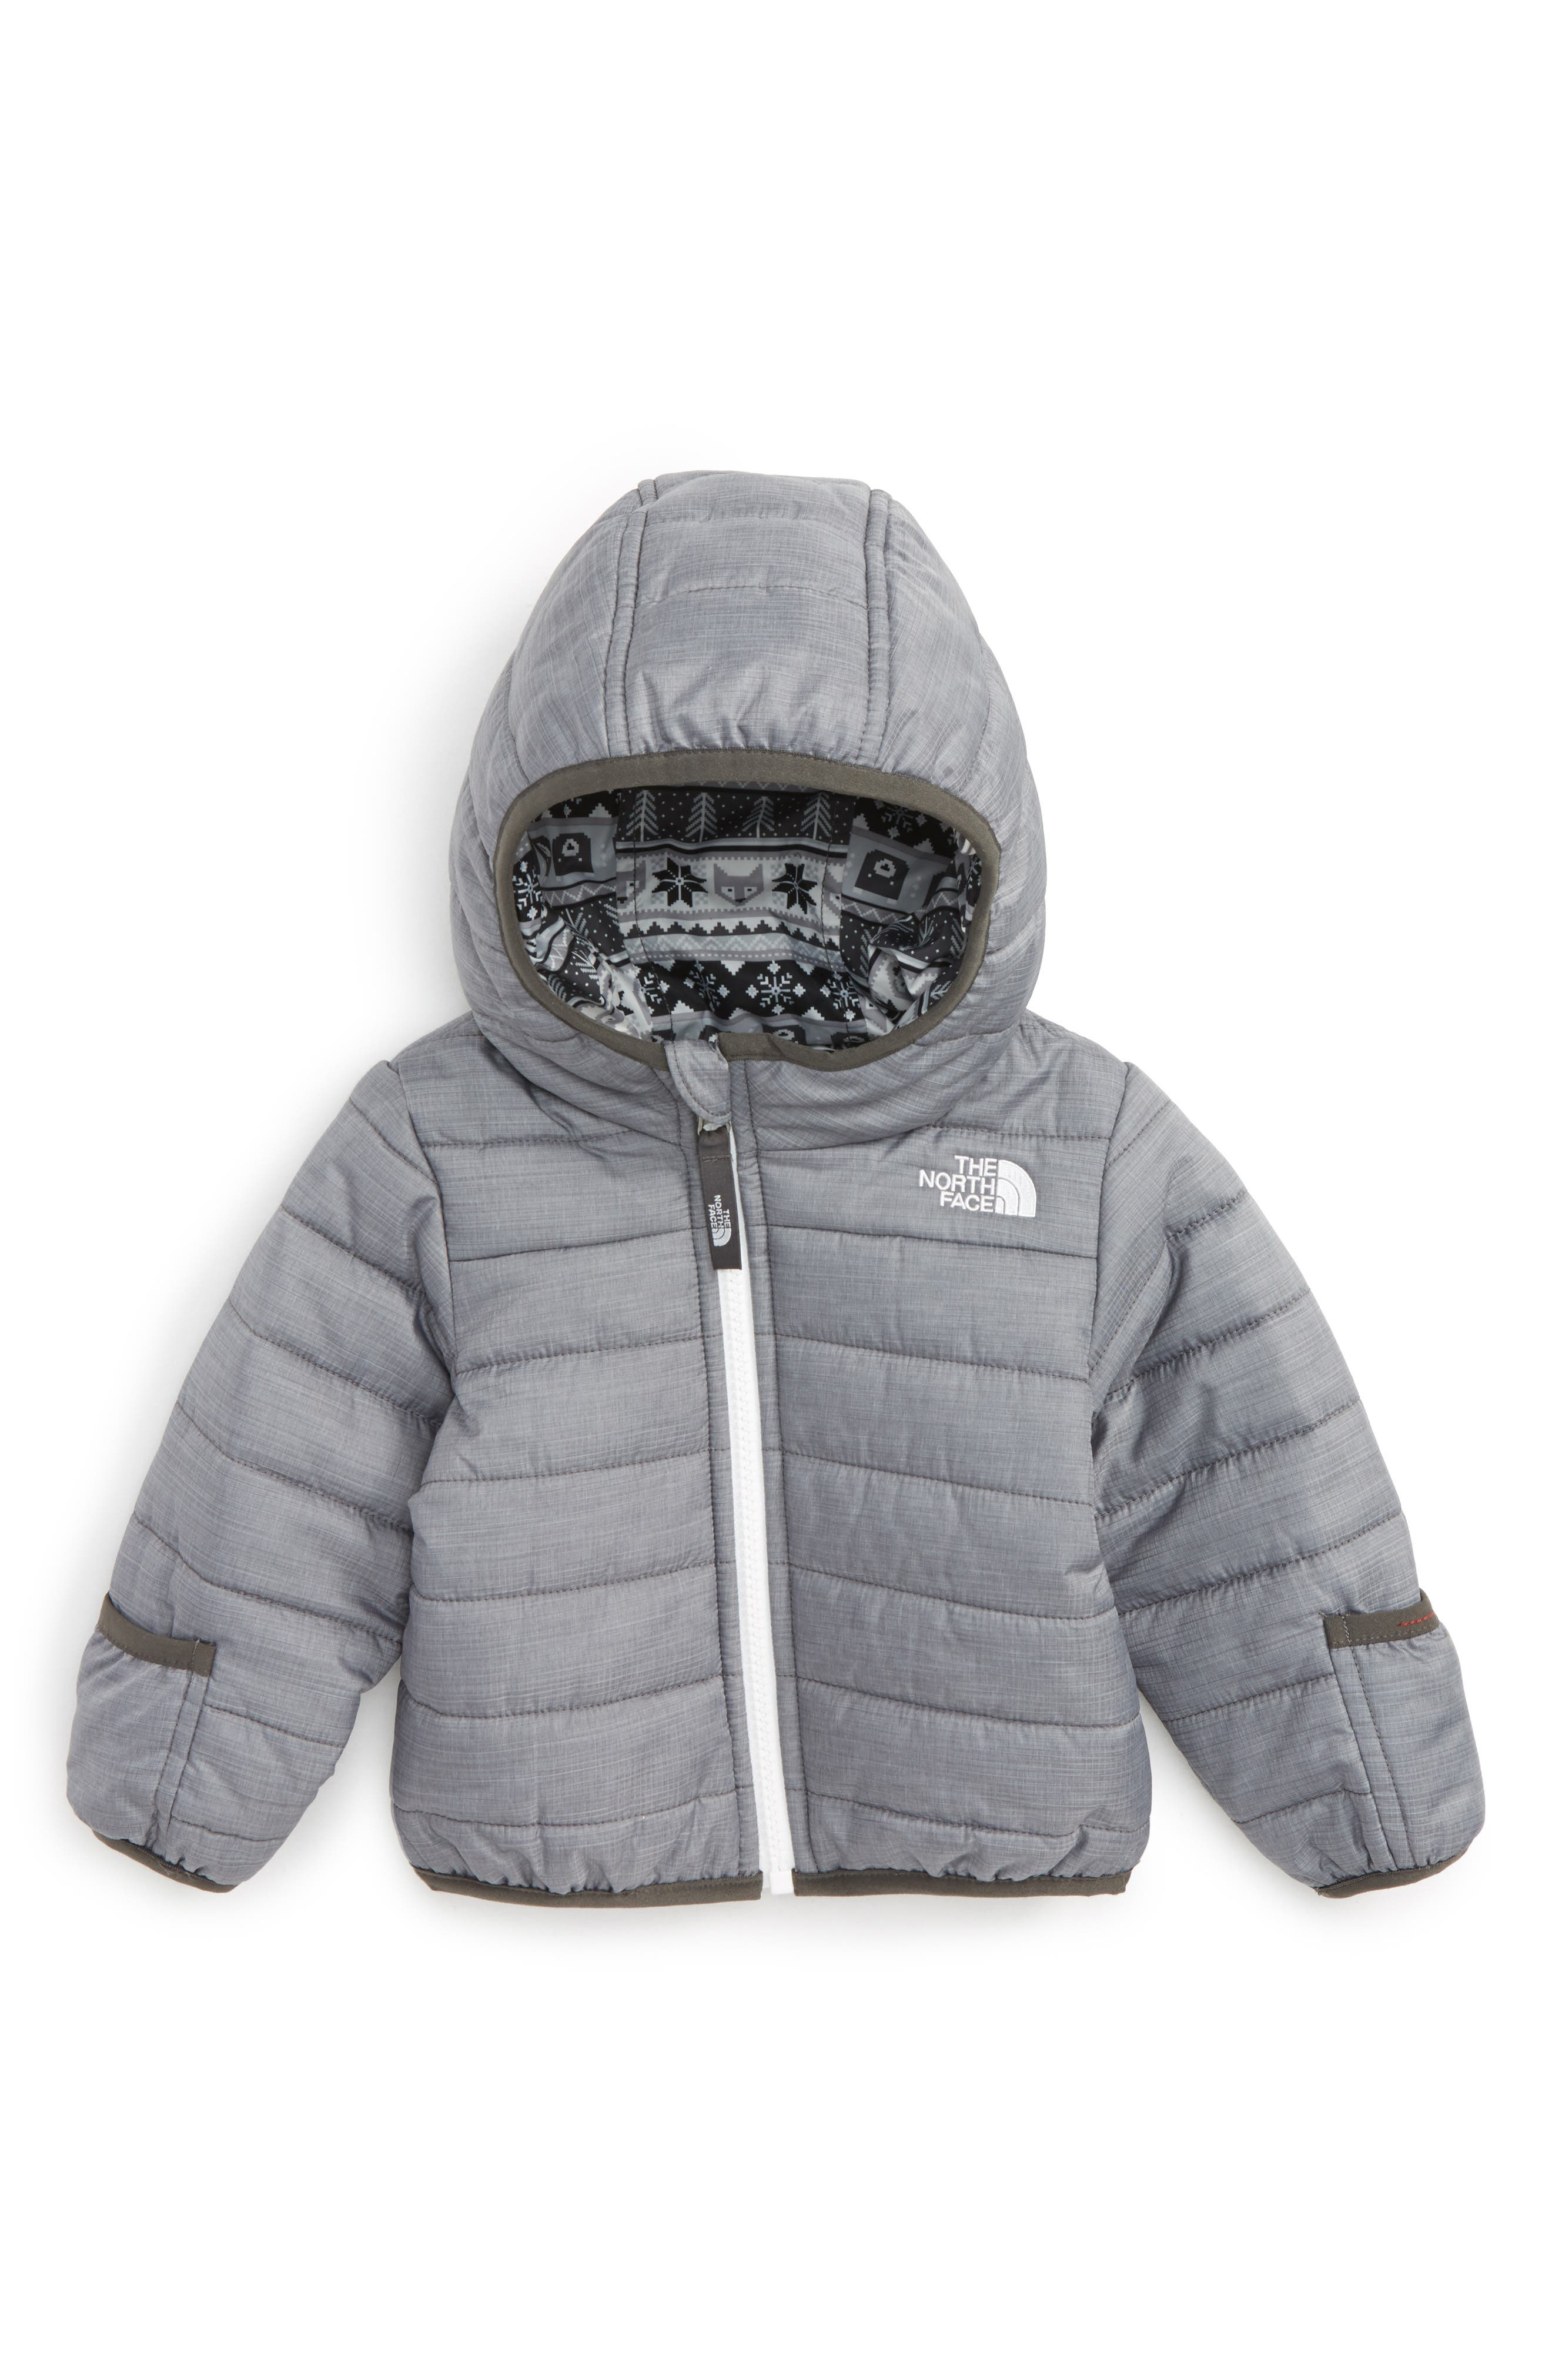 'Perrito' Reversible Water Repellent Hooded Jacket,                         Main,                         color, Tnf Medium Grey Heather